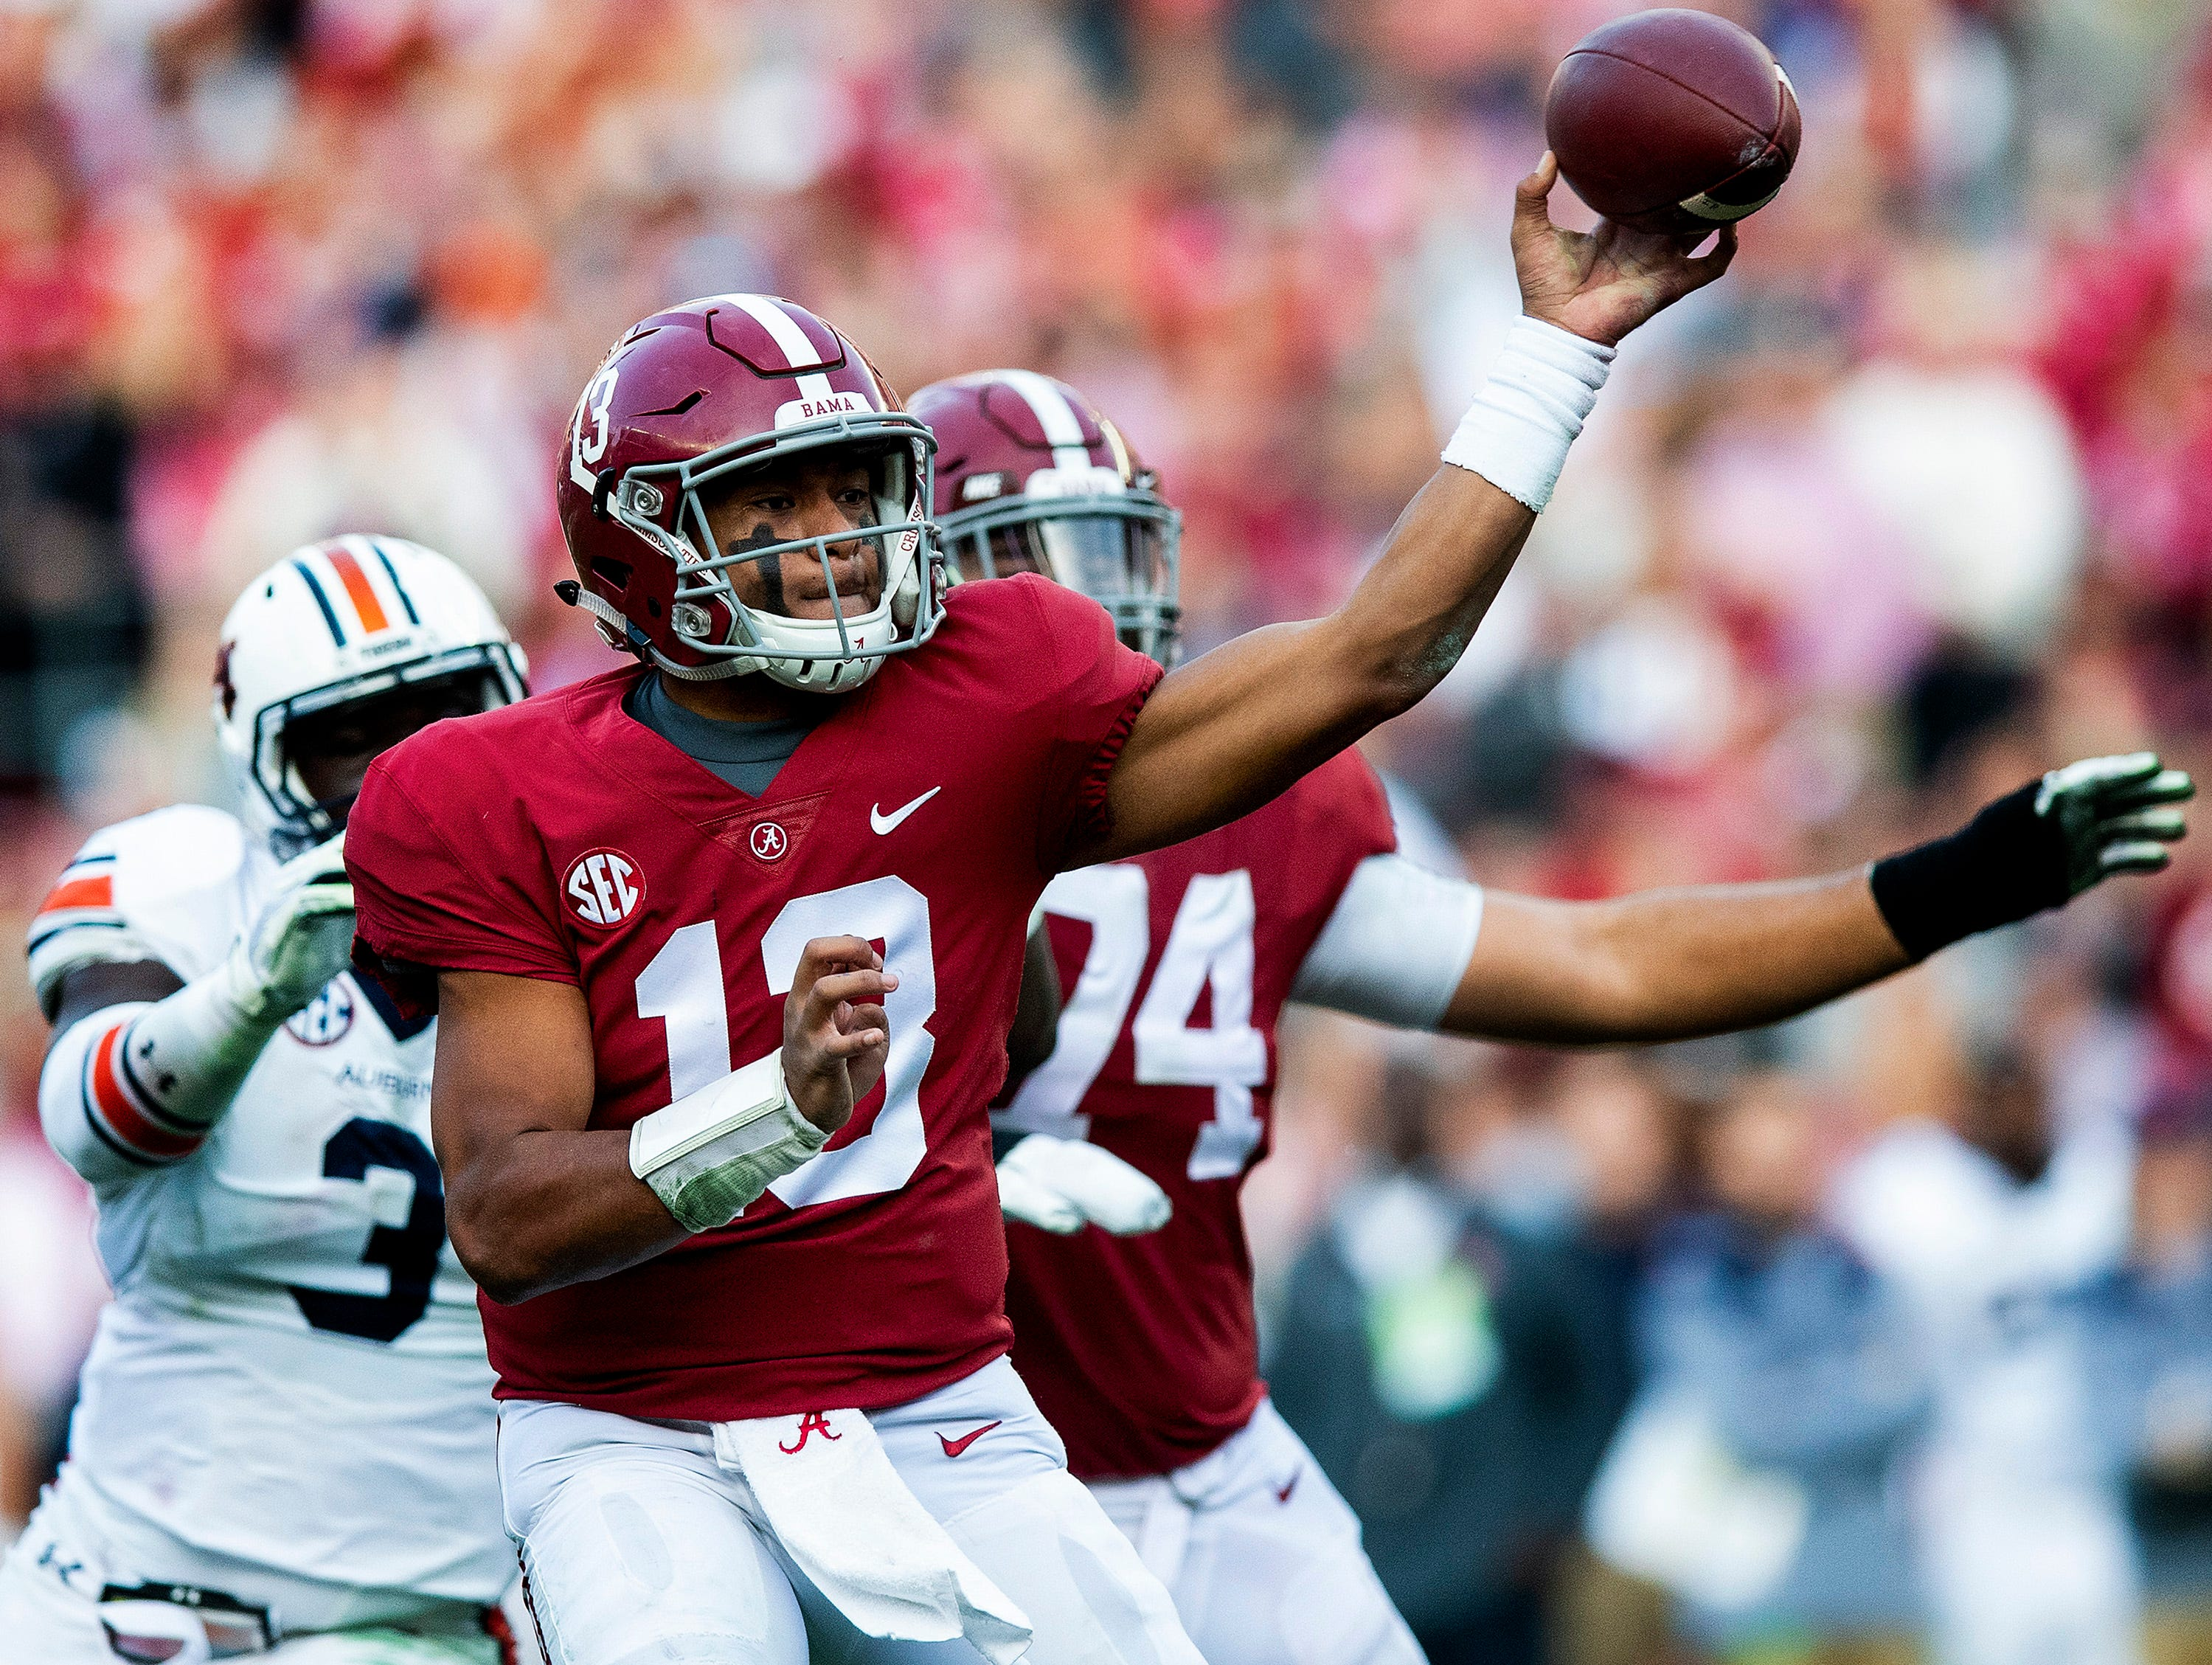 Alabama quarterback Tua Tagovailoa (13) passes against Auburn in first half action during the Iron Bowl at Bryant-Denny Stadium in Tuscaloosa, Ala., on Saturday November 24, 2018.